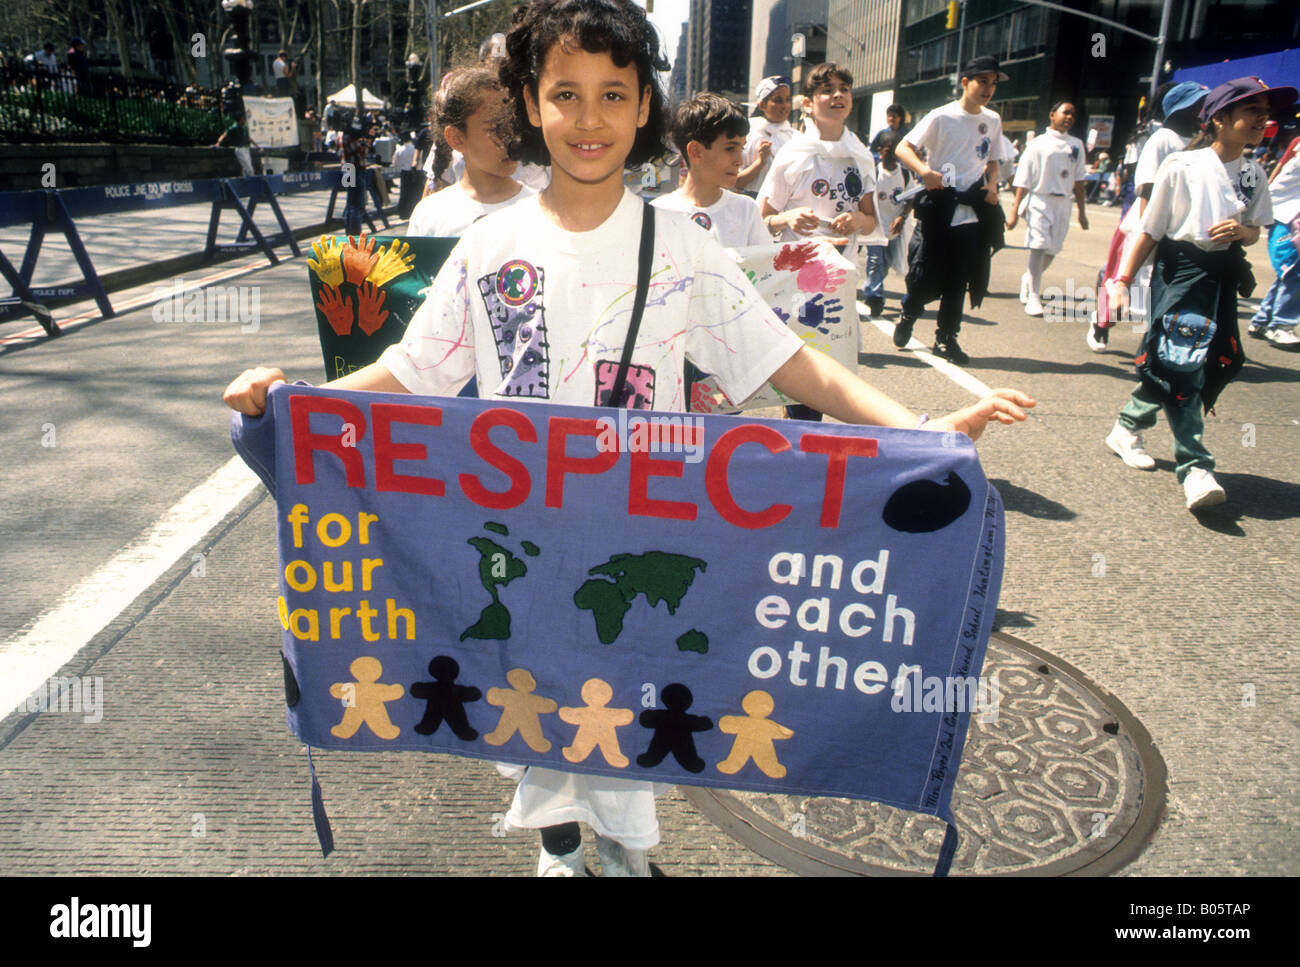 Children march in the Parade for the Planet up Sixth Avenue in New York on Earth Day 1995 - Stock Image